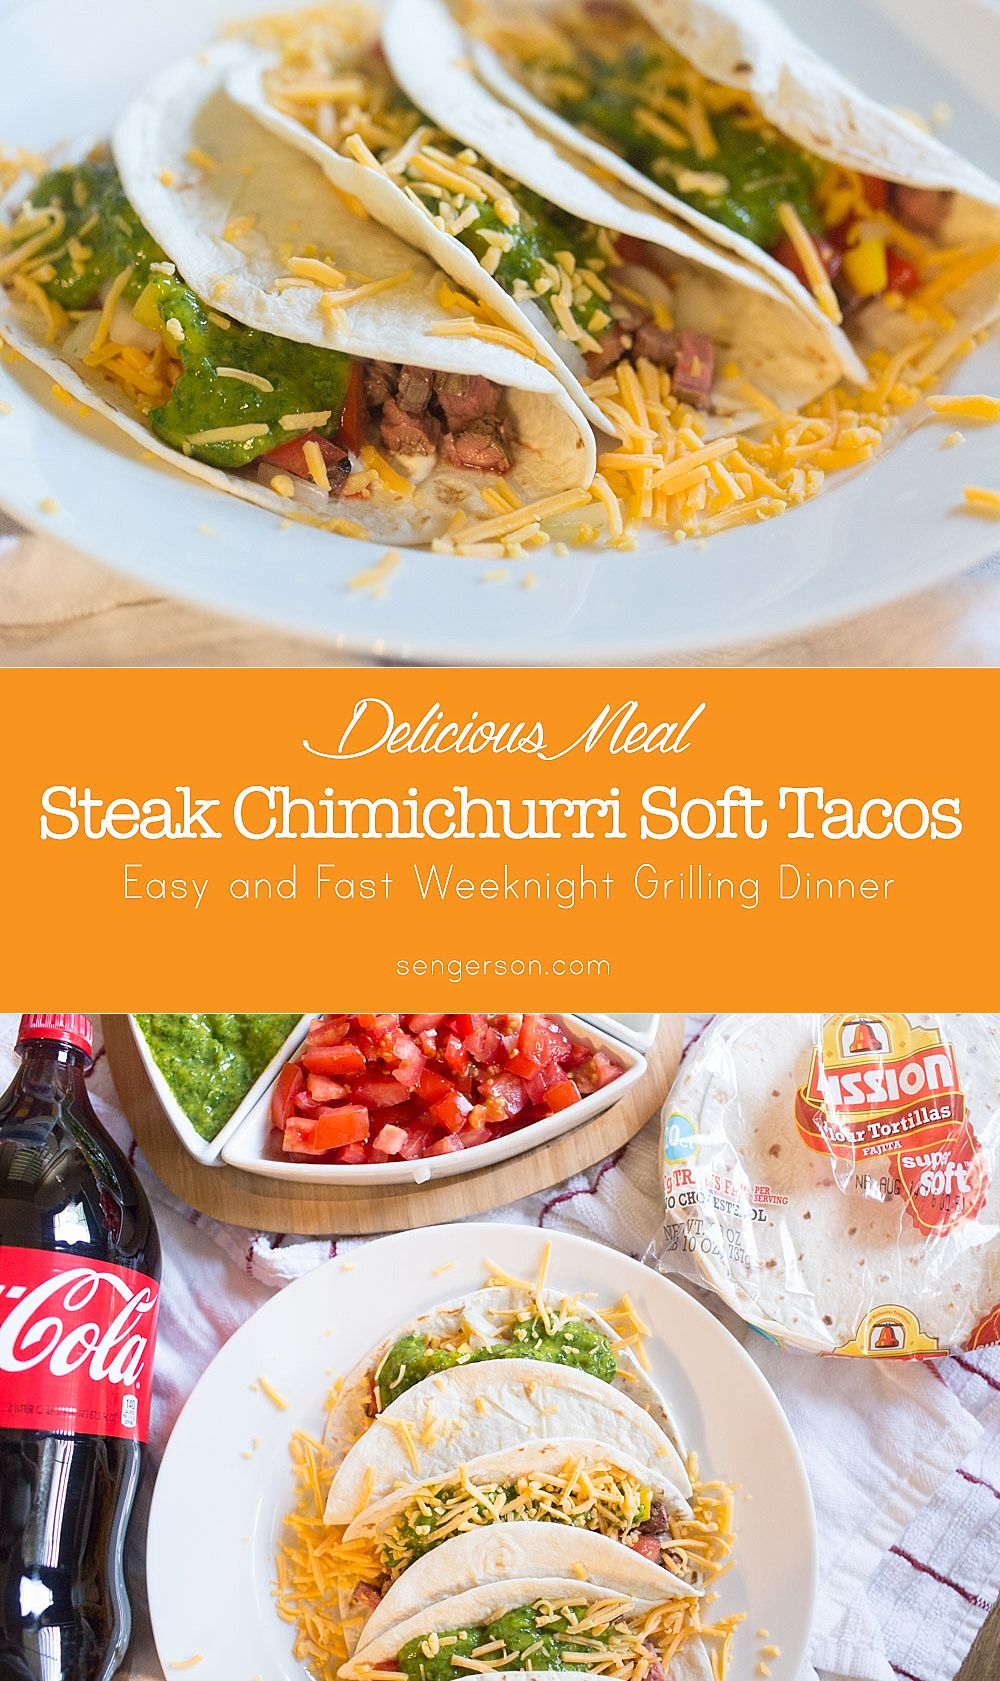 How to Make Easy Chimichurri Sauce for Steak receta recipe   Easy Chimichurri Steak Tacos featured by top US food blogger, Sengerson